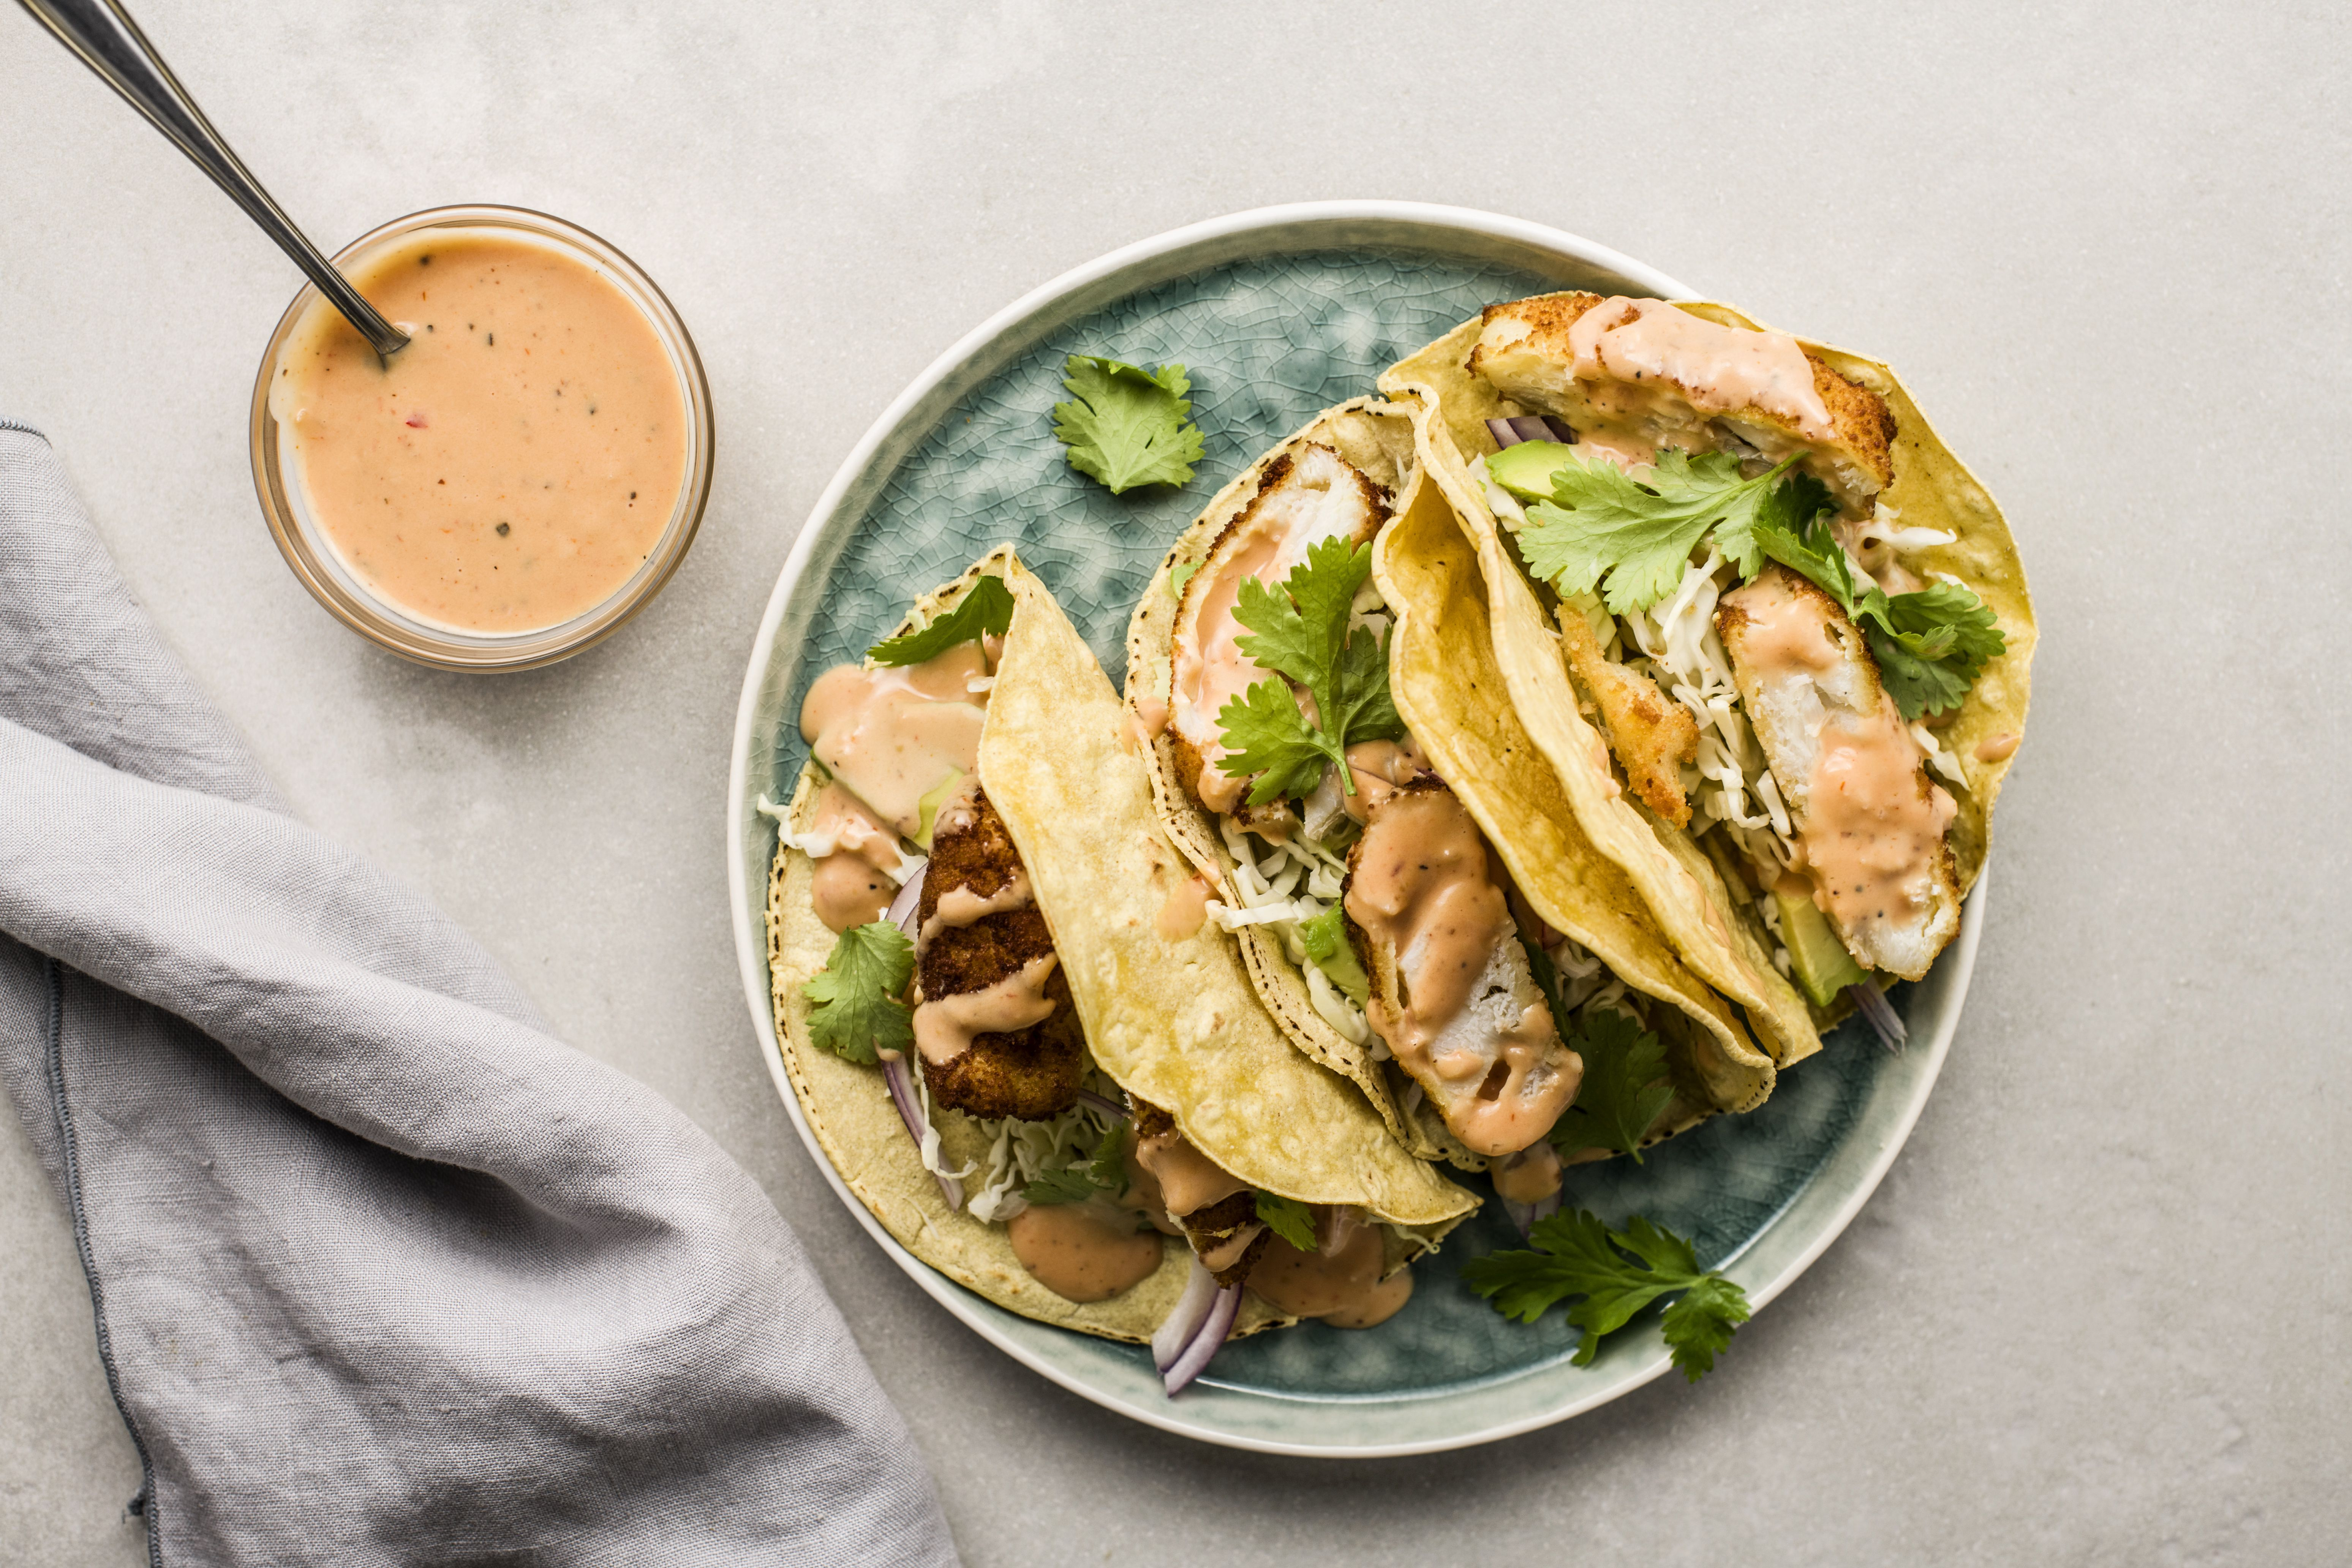 Southern comeback sauce served over tacos